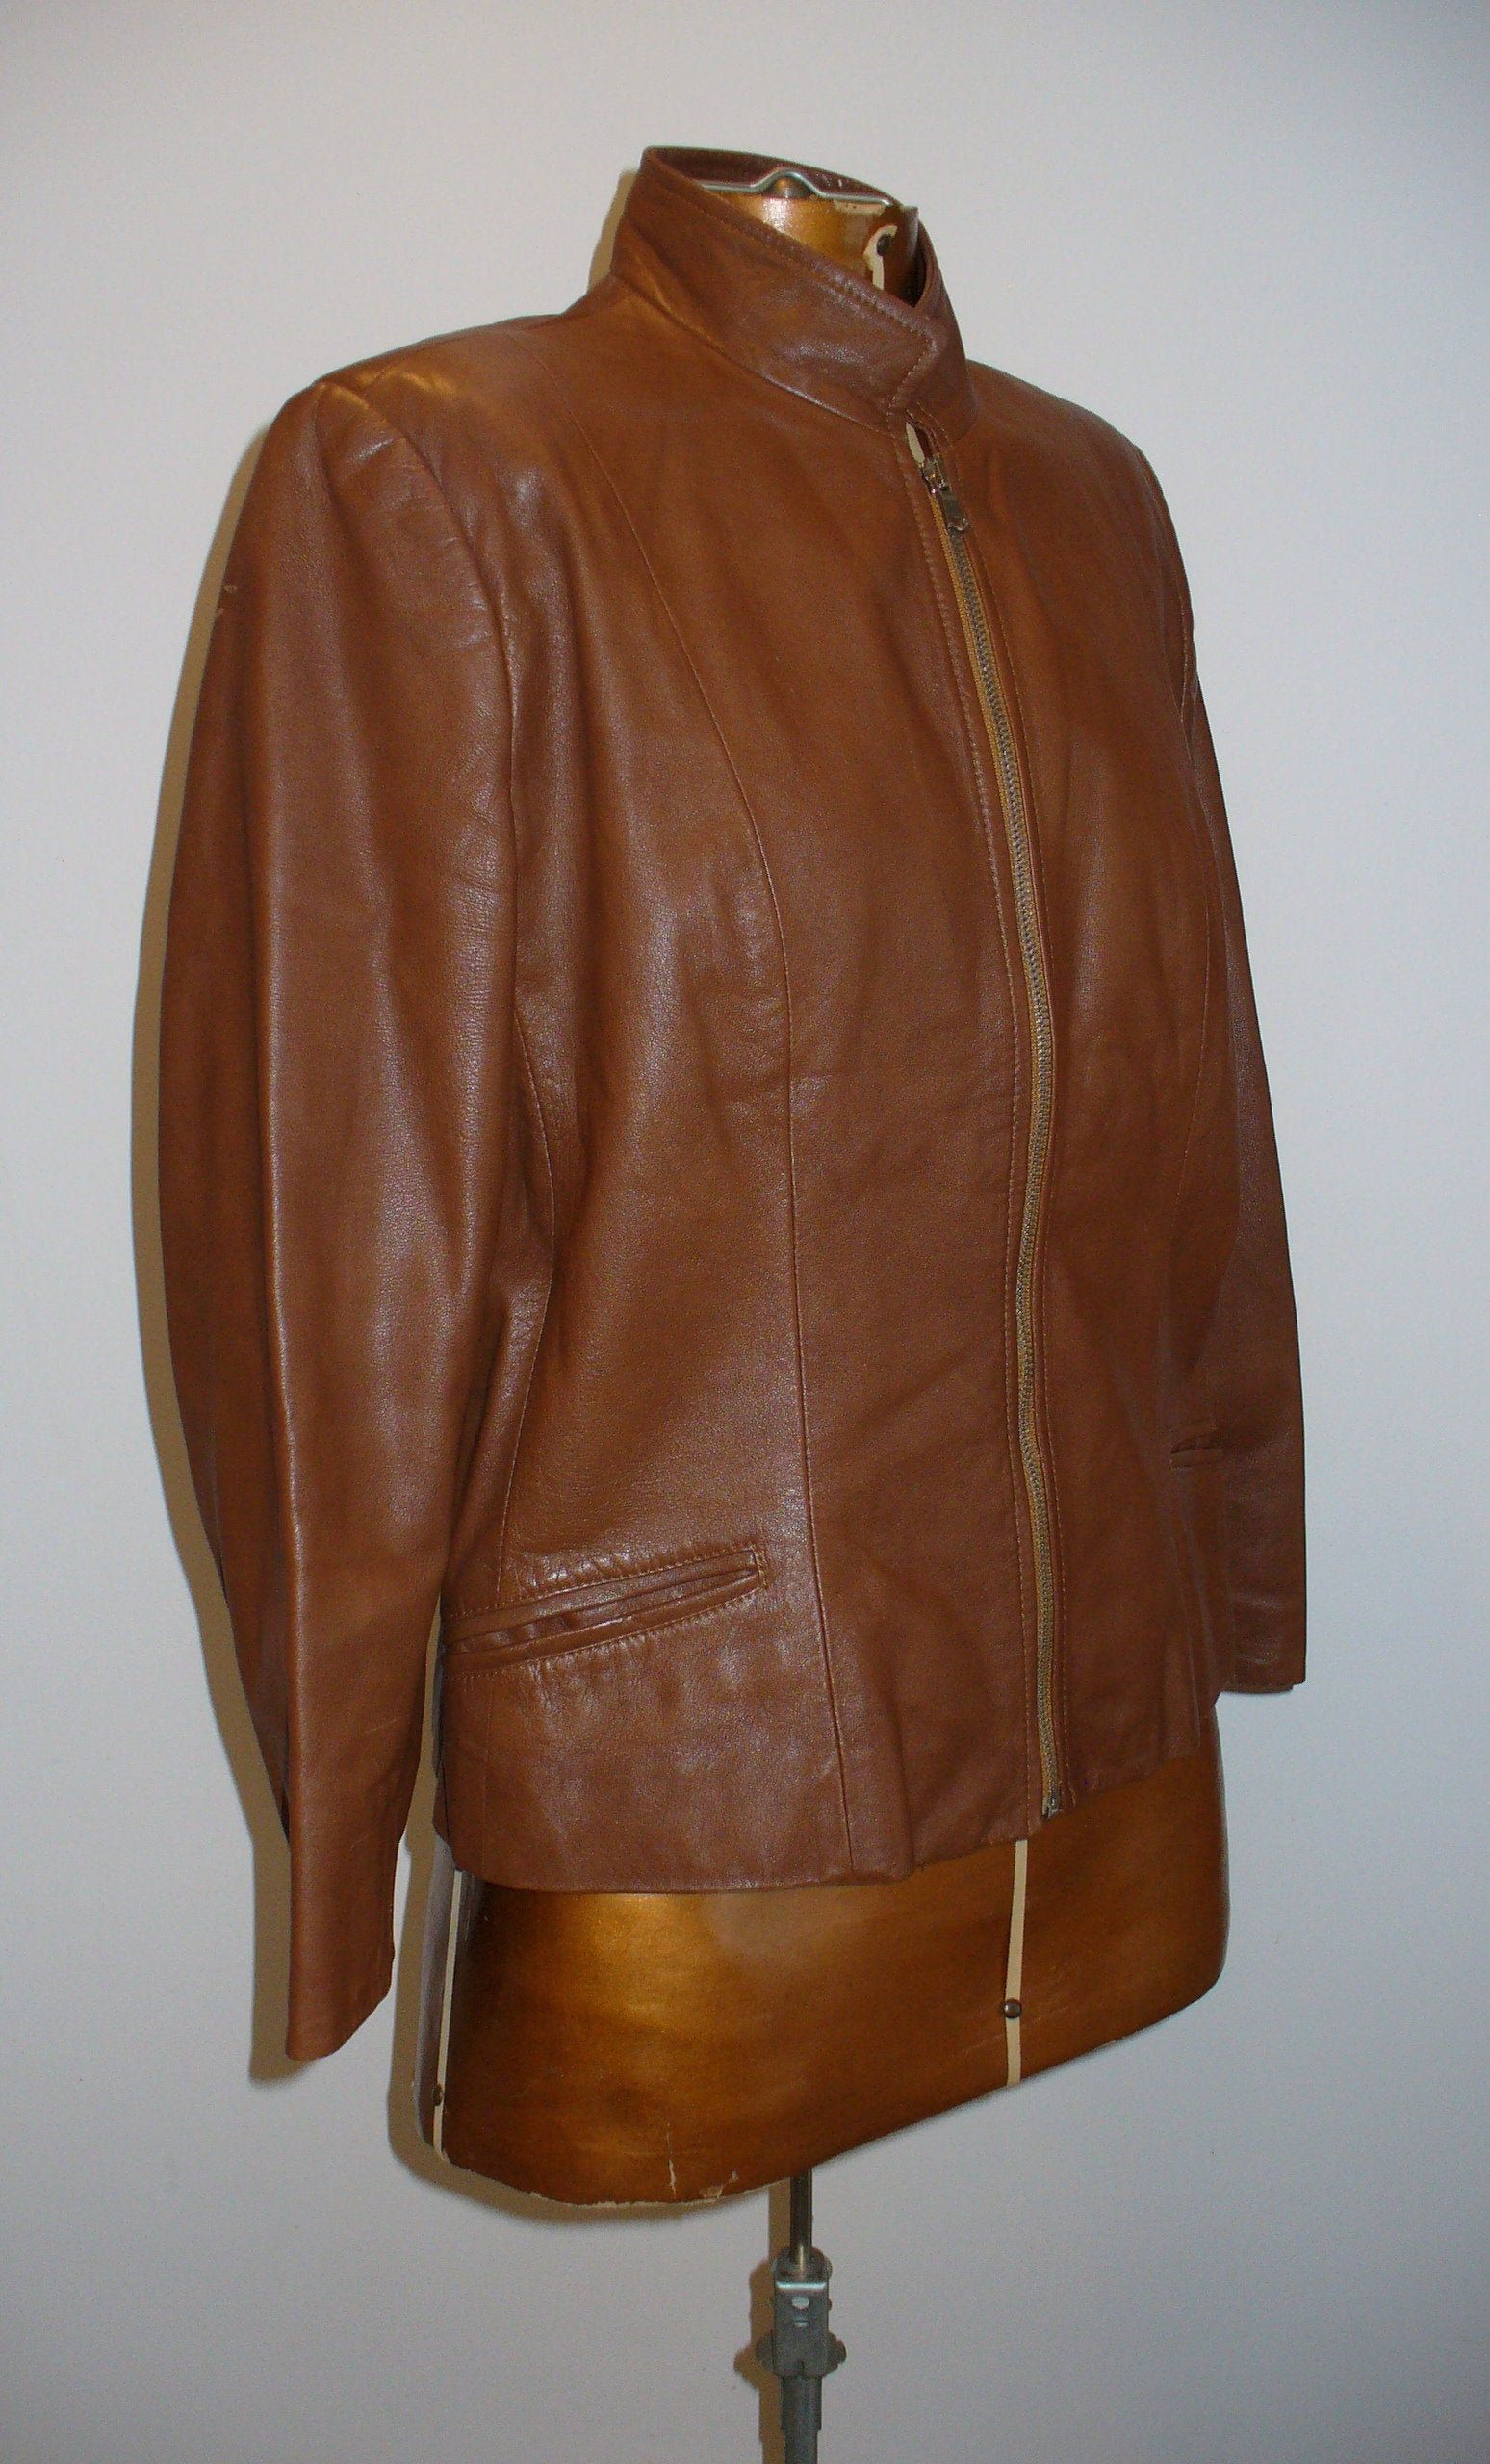 Vintage Scuola Del Cuoio Leather Moto Jacket Made in Italy